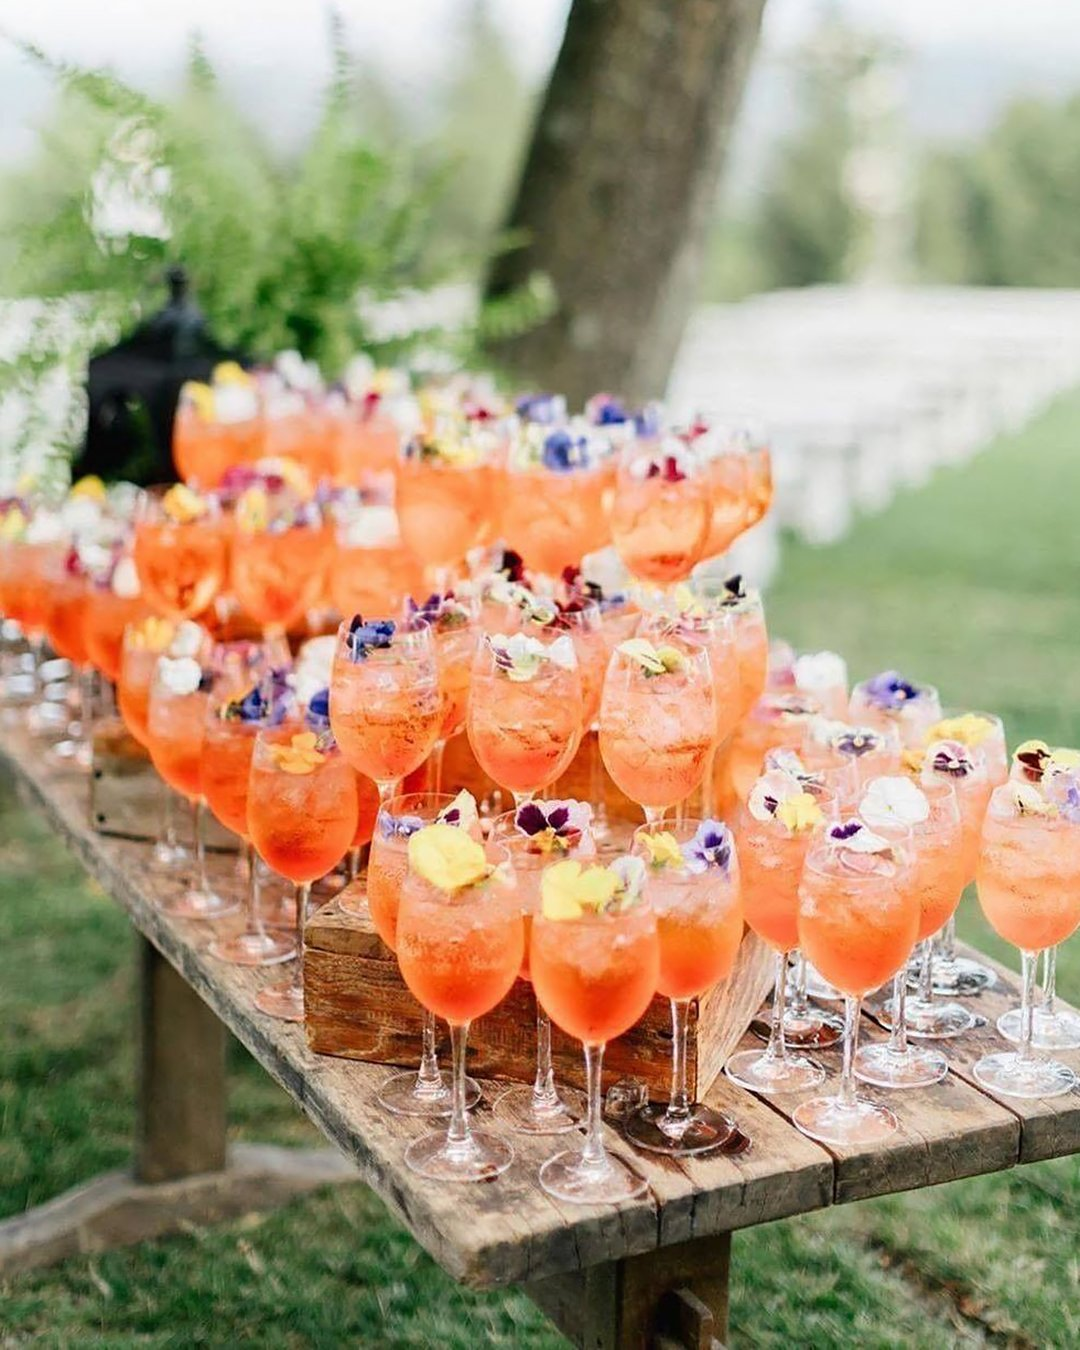 popular instagram posts 2020 decor coctails drink emilywrenphoto